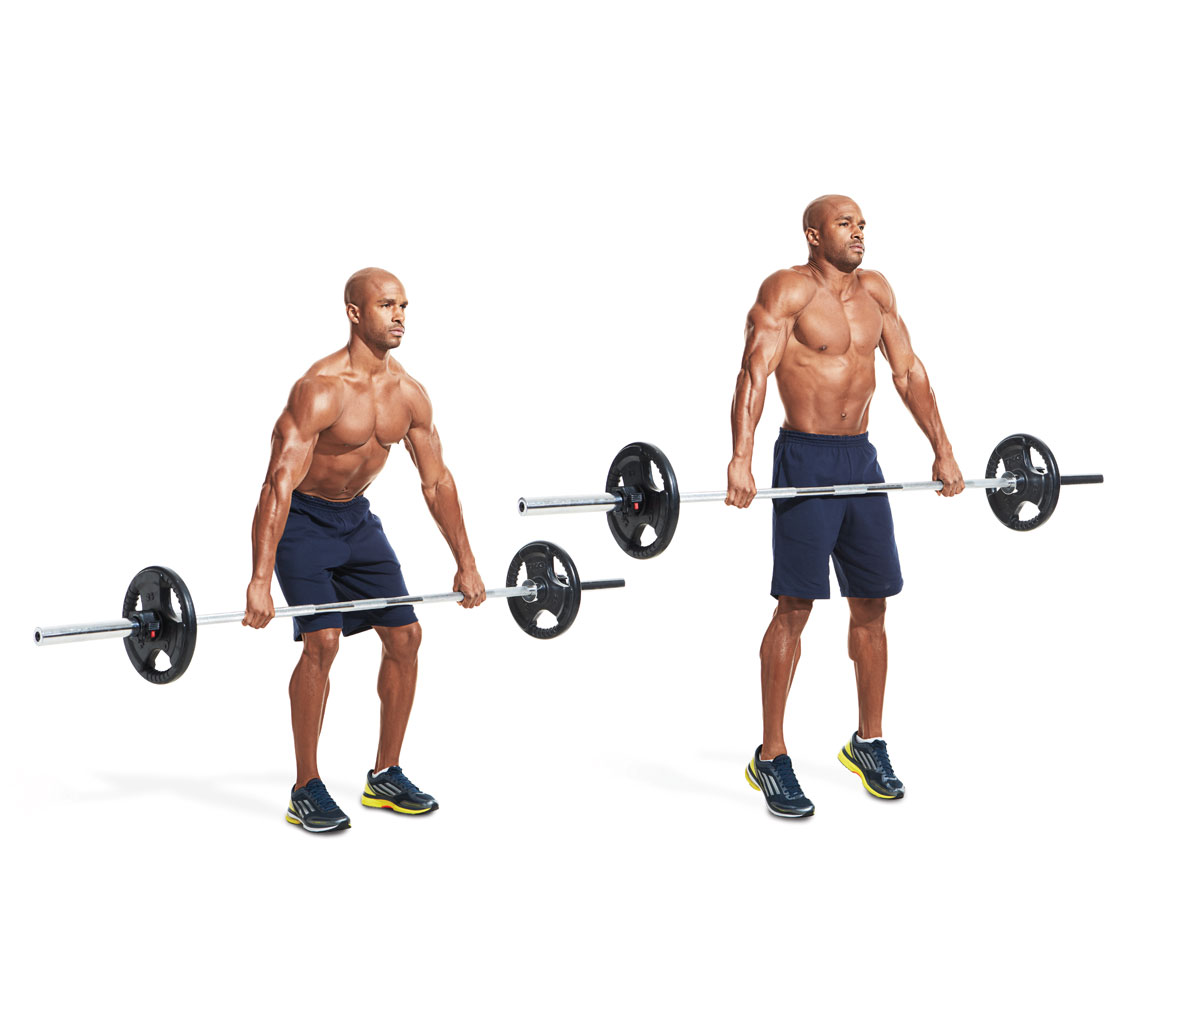 The 30 Best Shoulder Workout Exercises of All Time